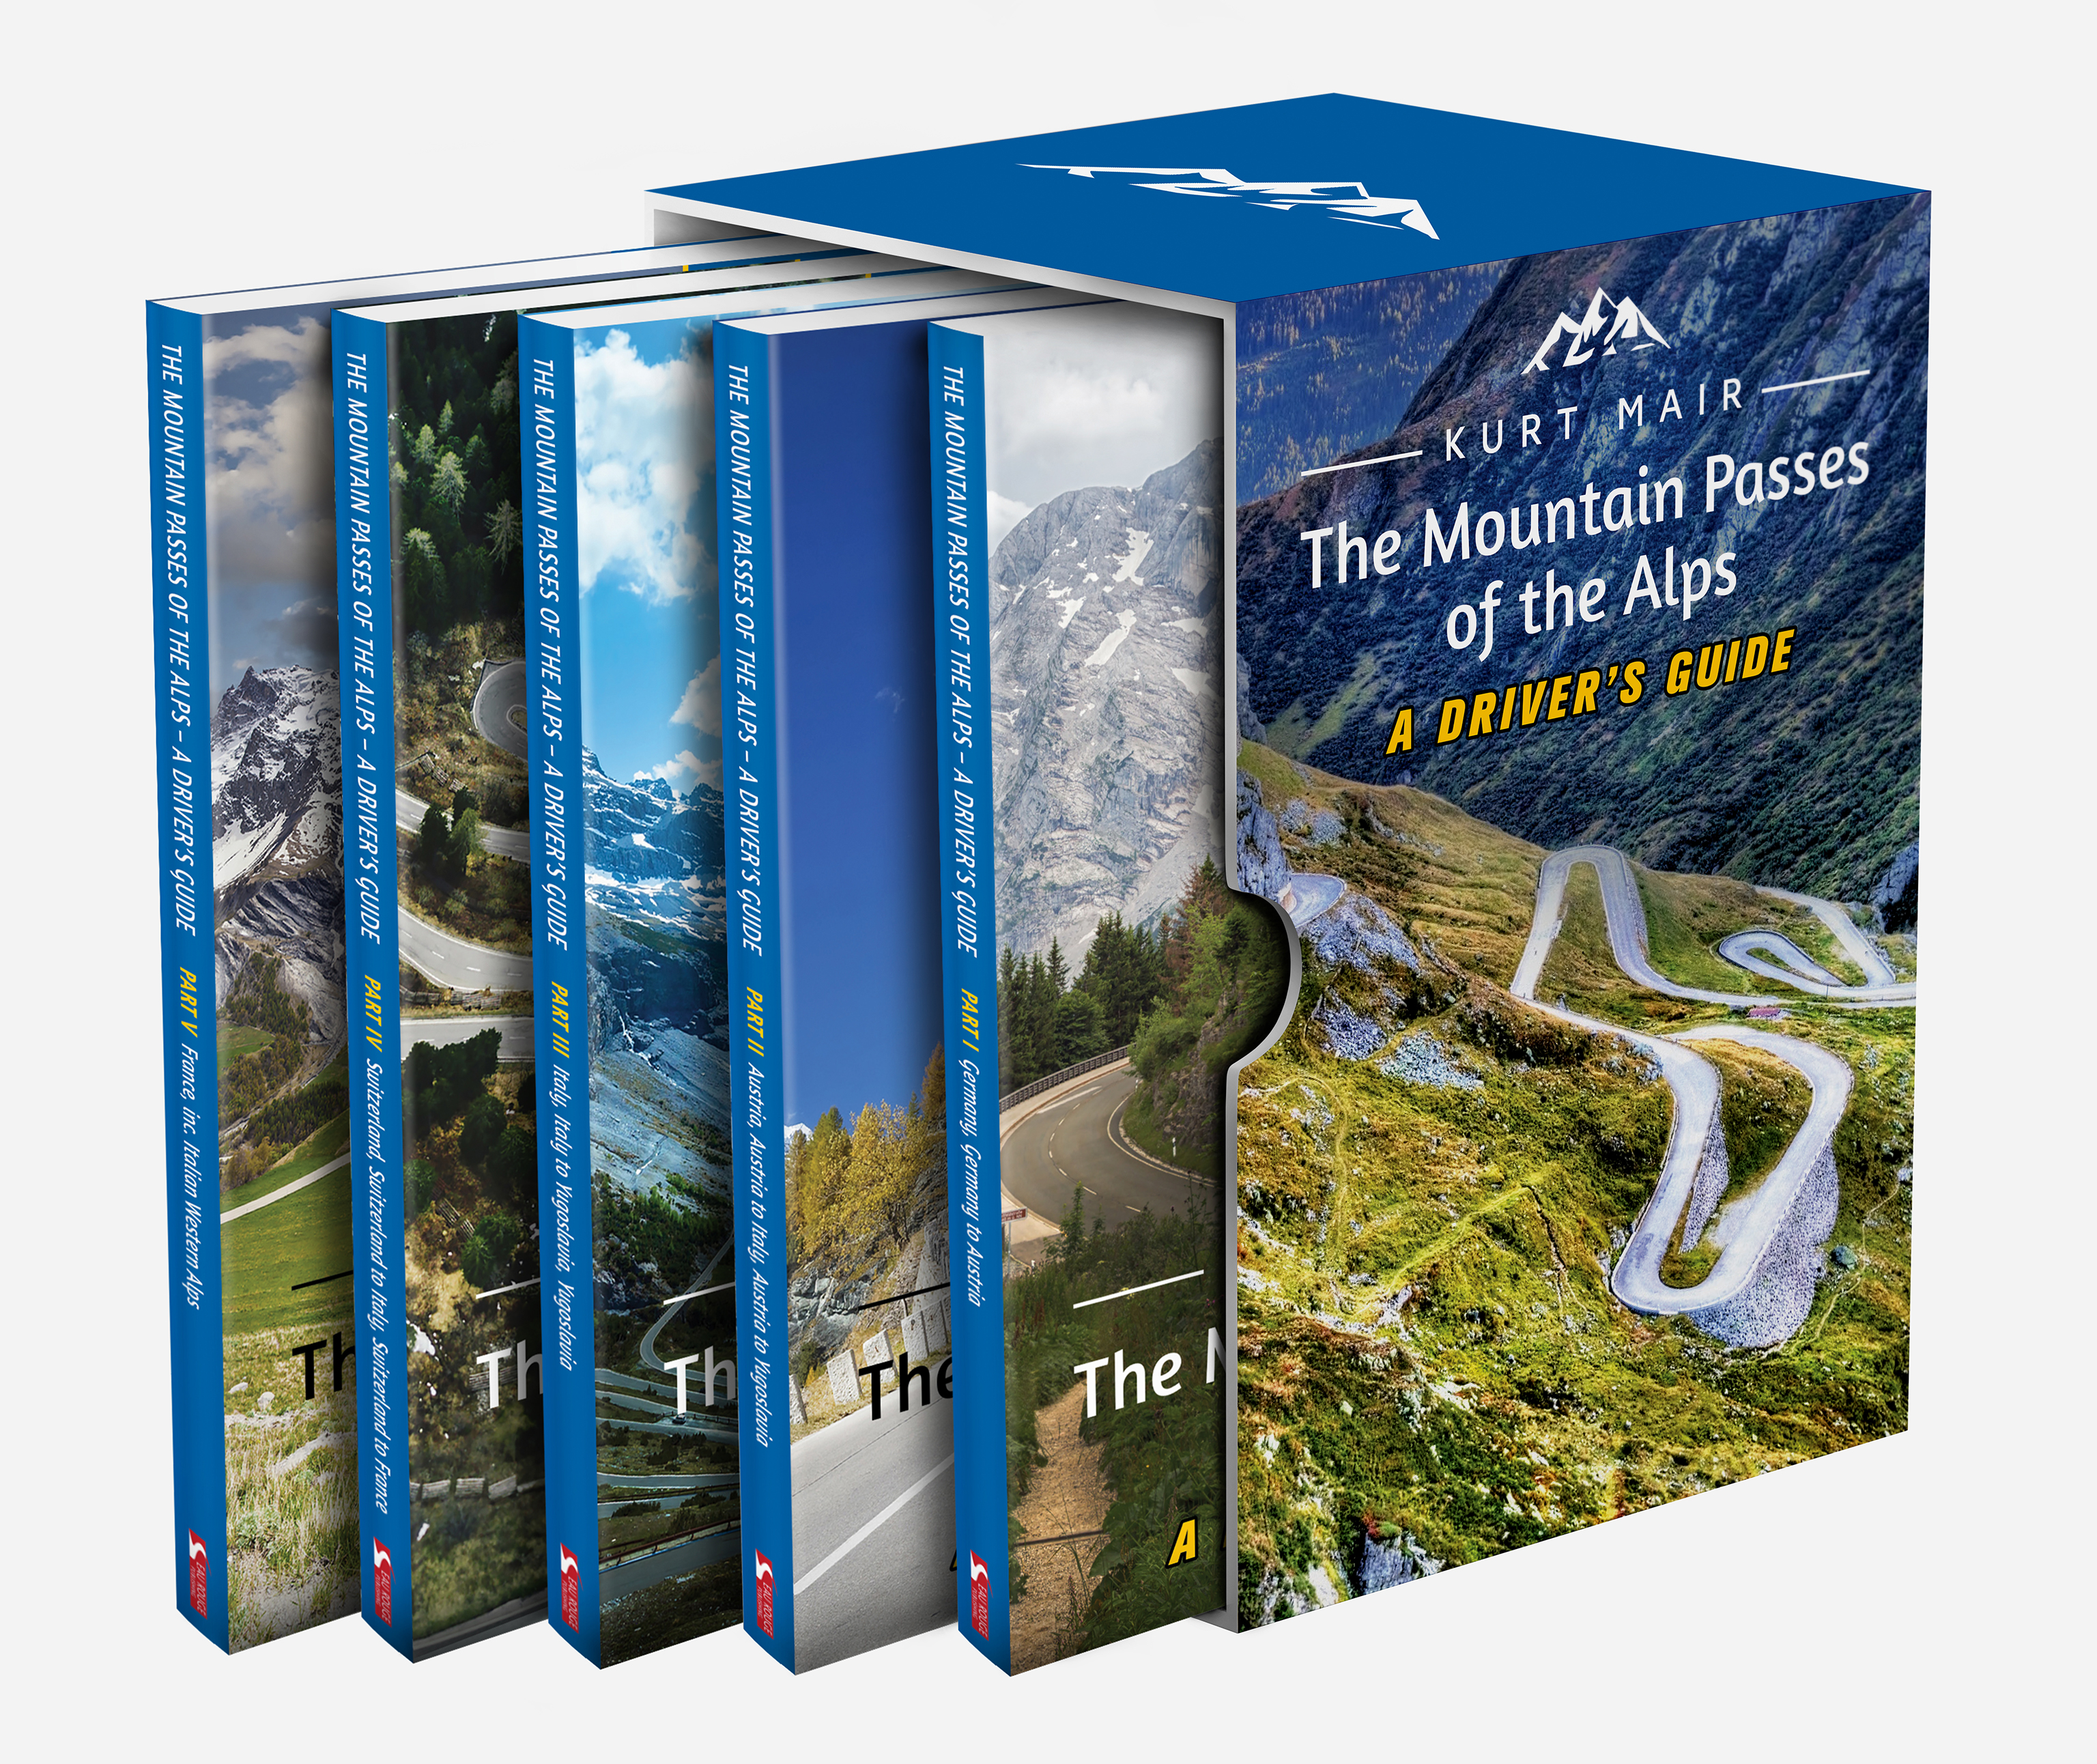 The Mountain Passes of the Alps - A Driver's Guide